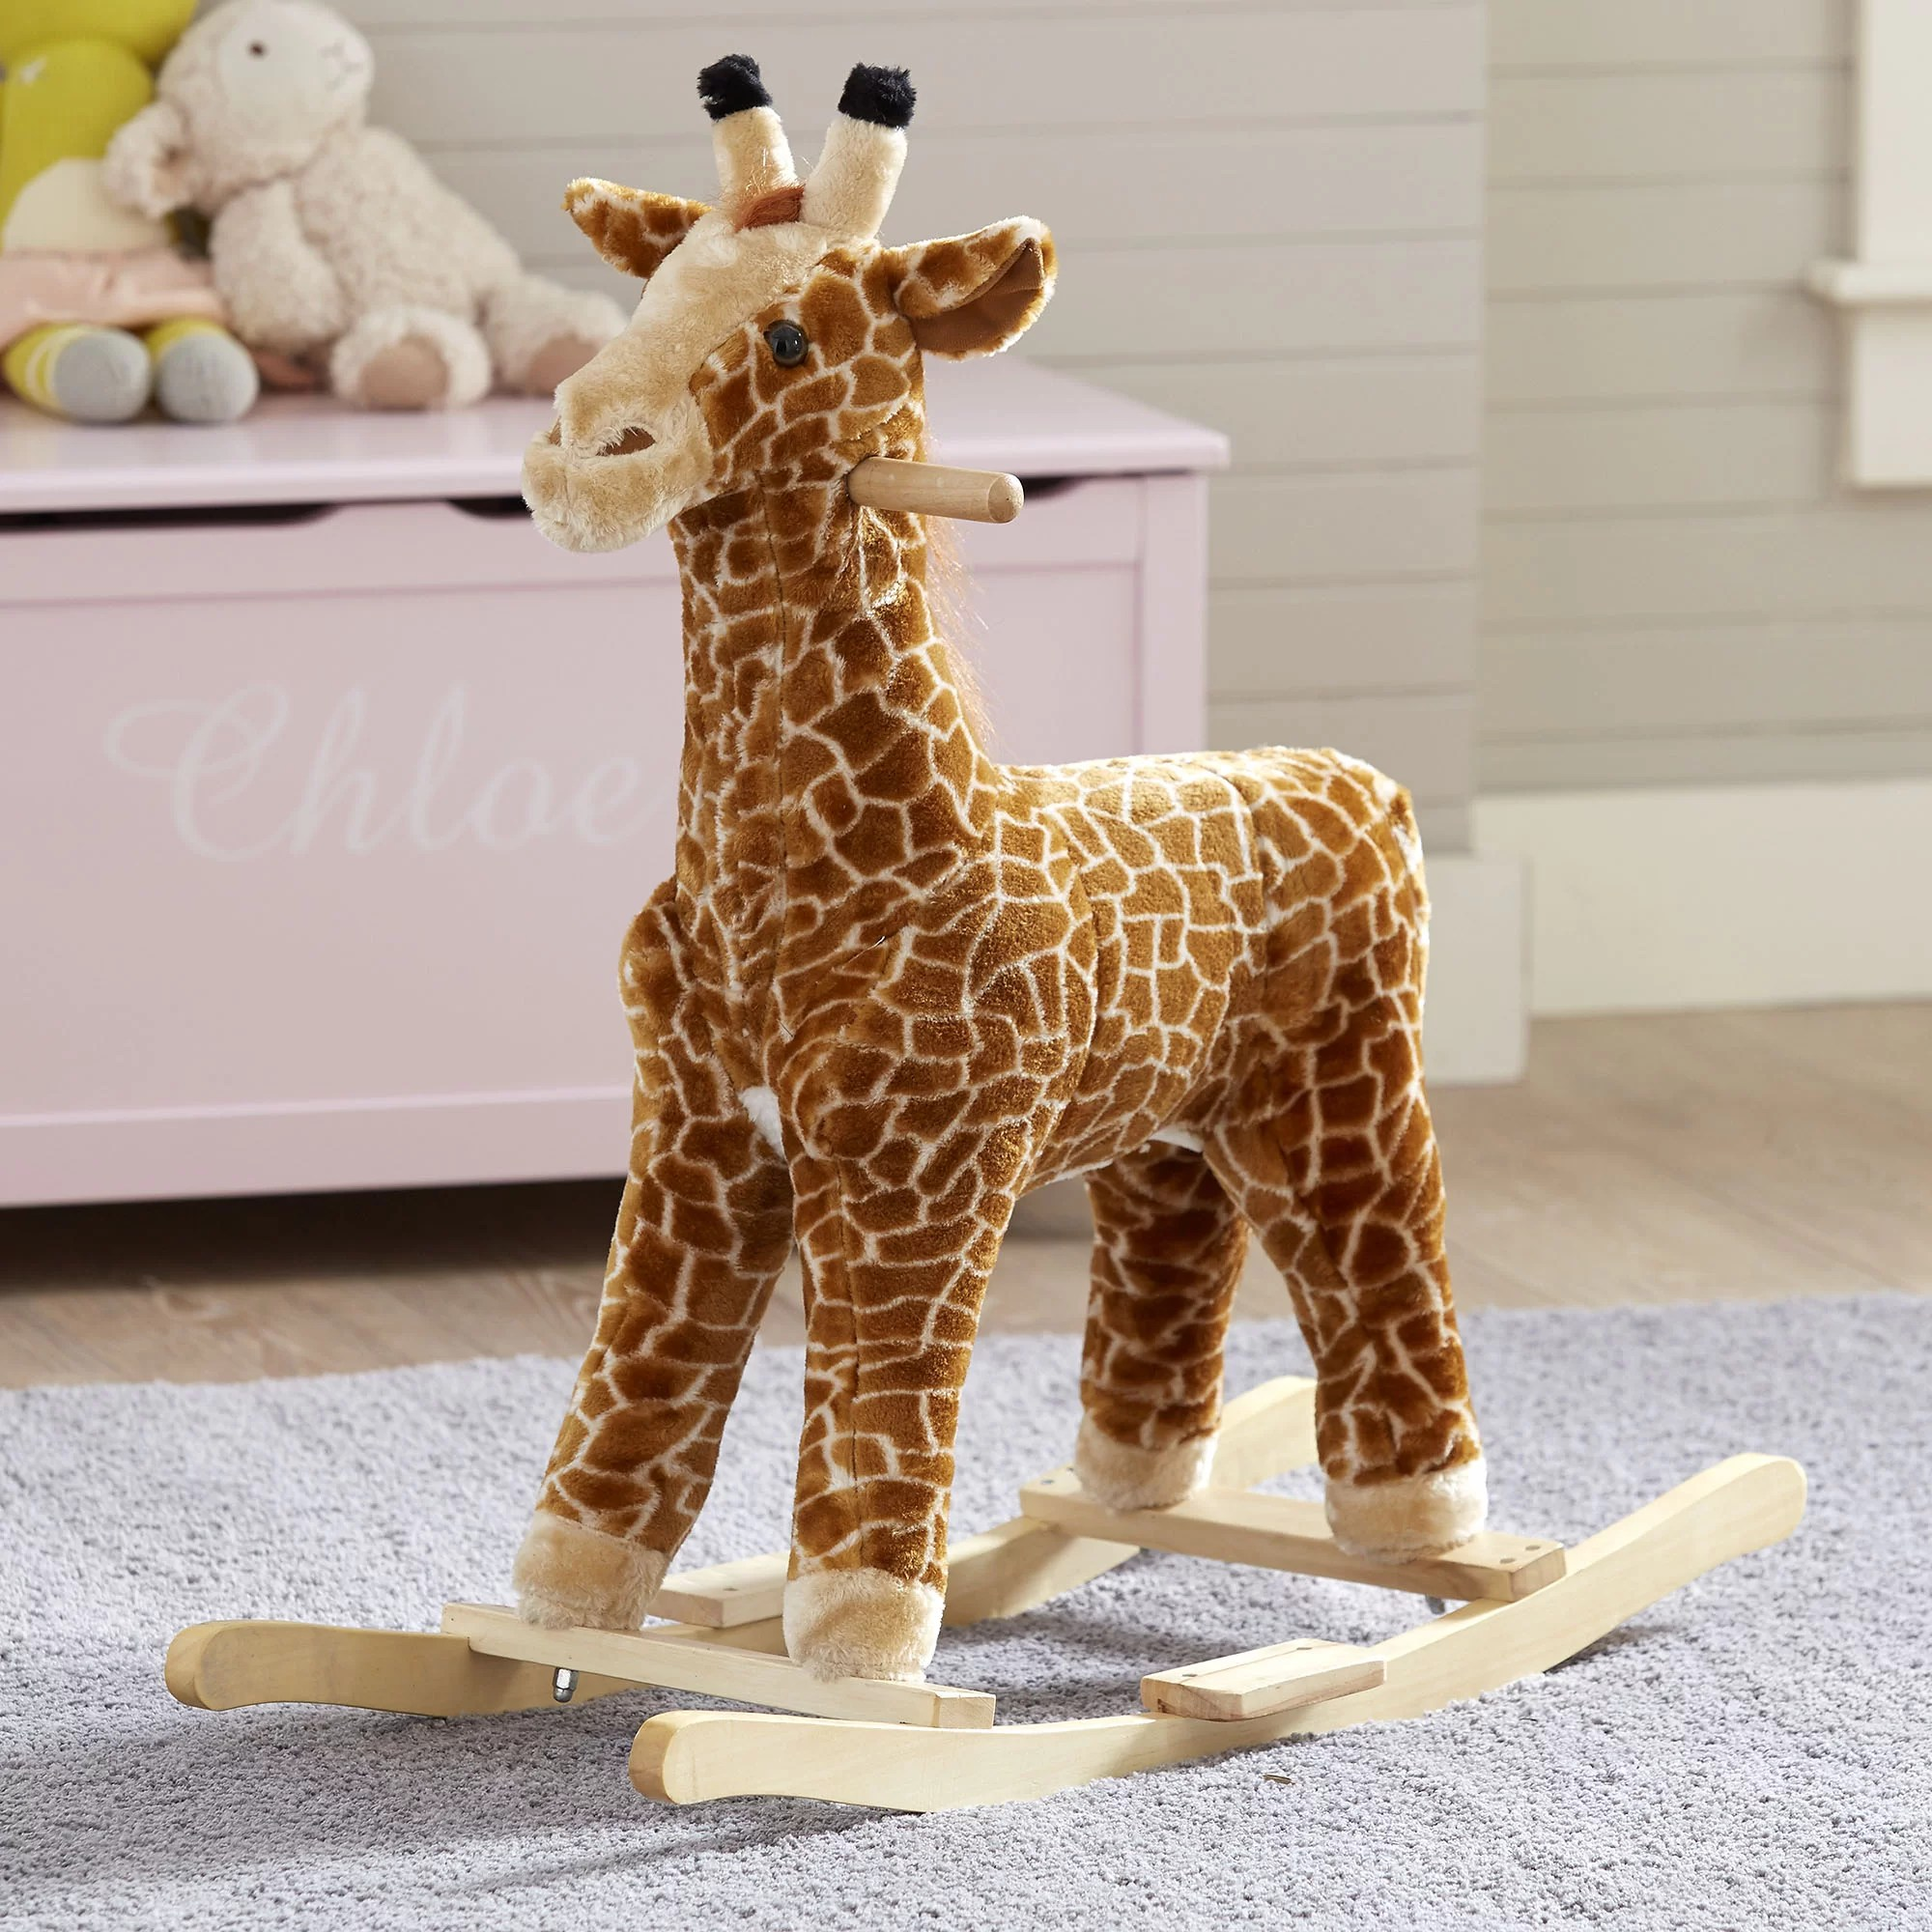 Giraffe Rocking Chair Birch Lane Kids Giraffe Rocker And Reviews Wayfair